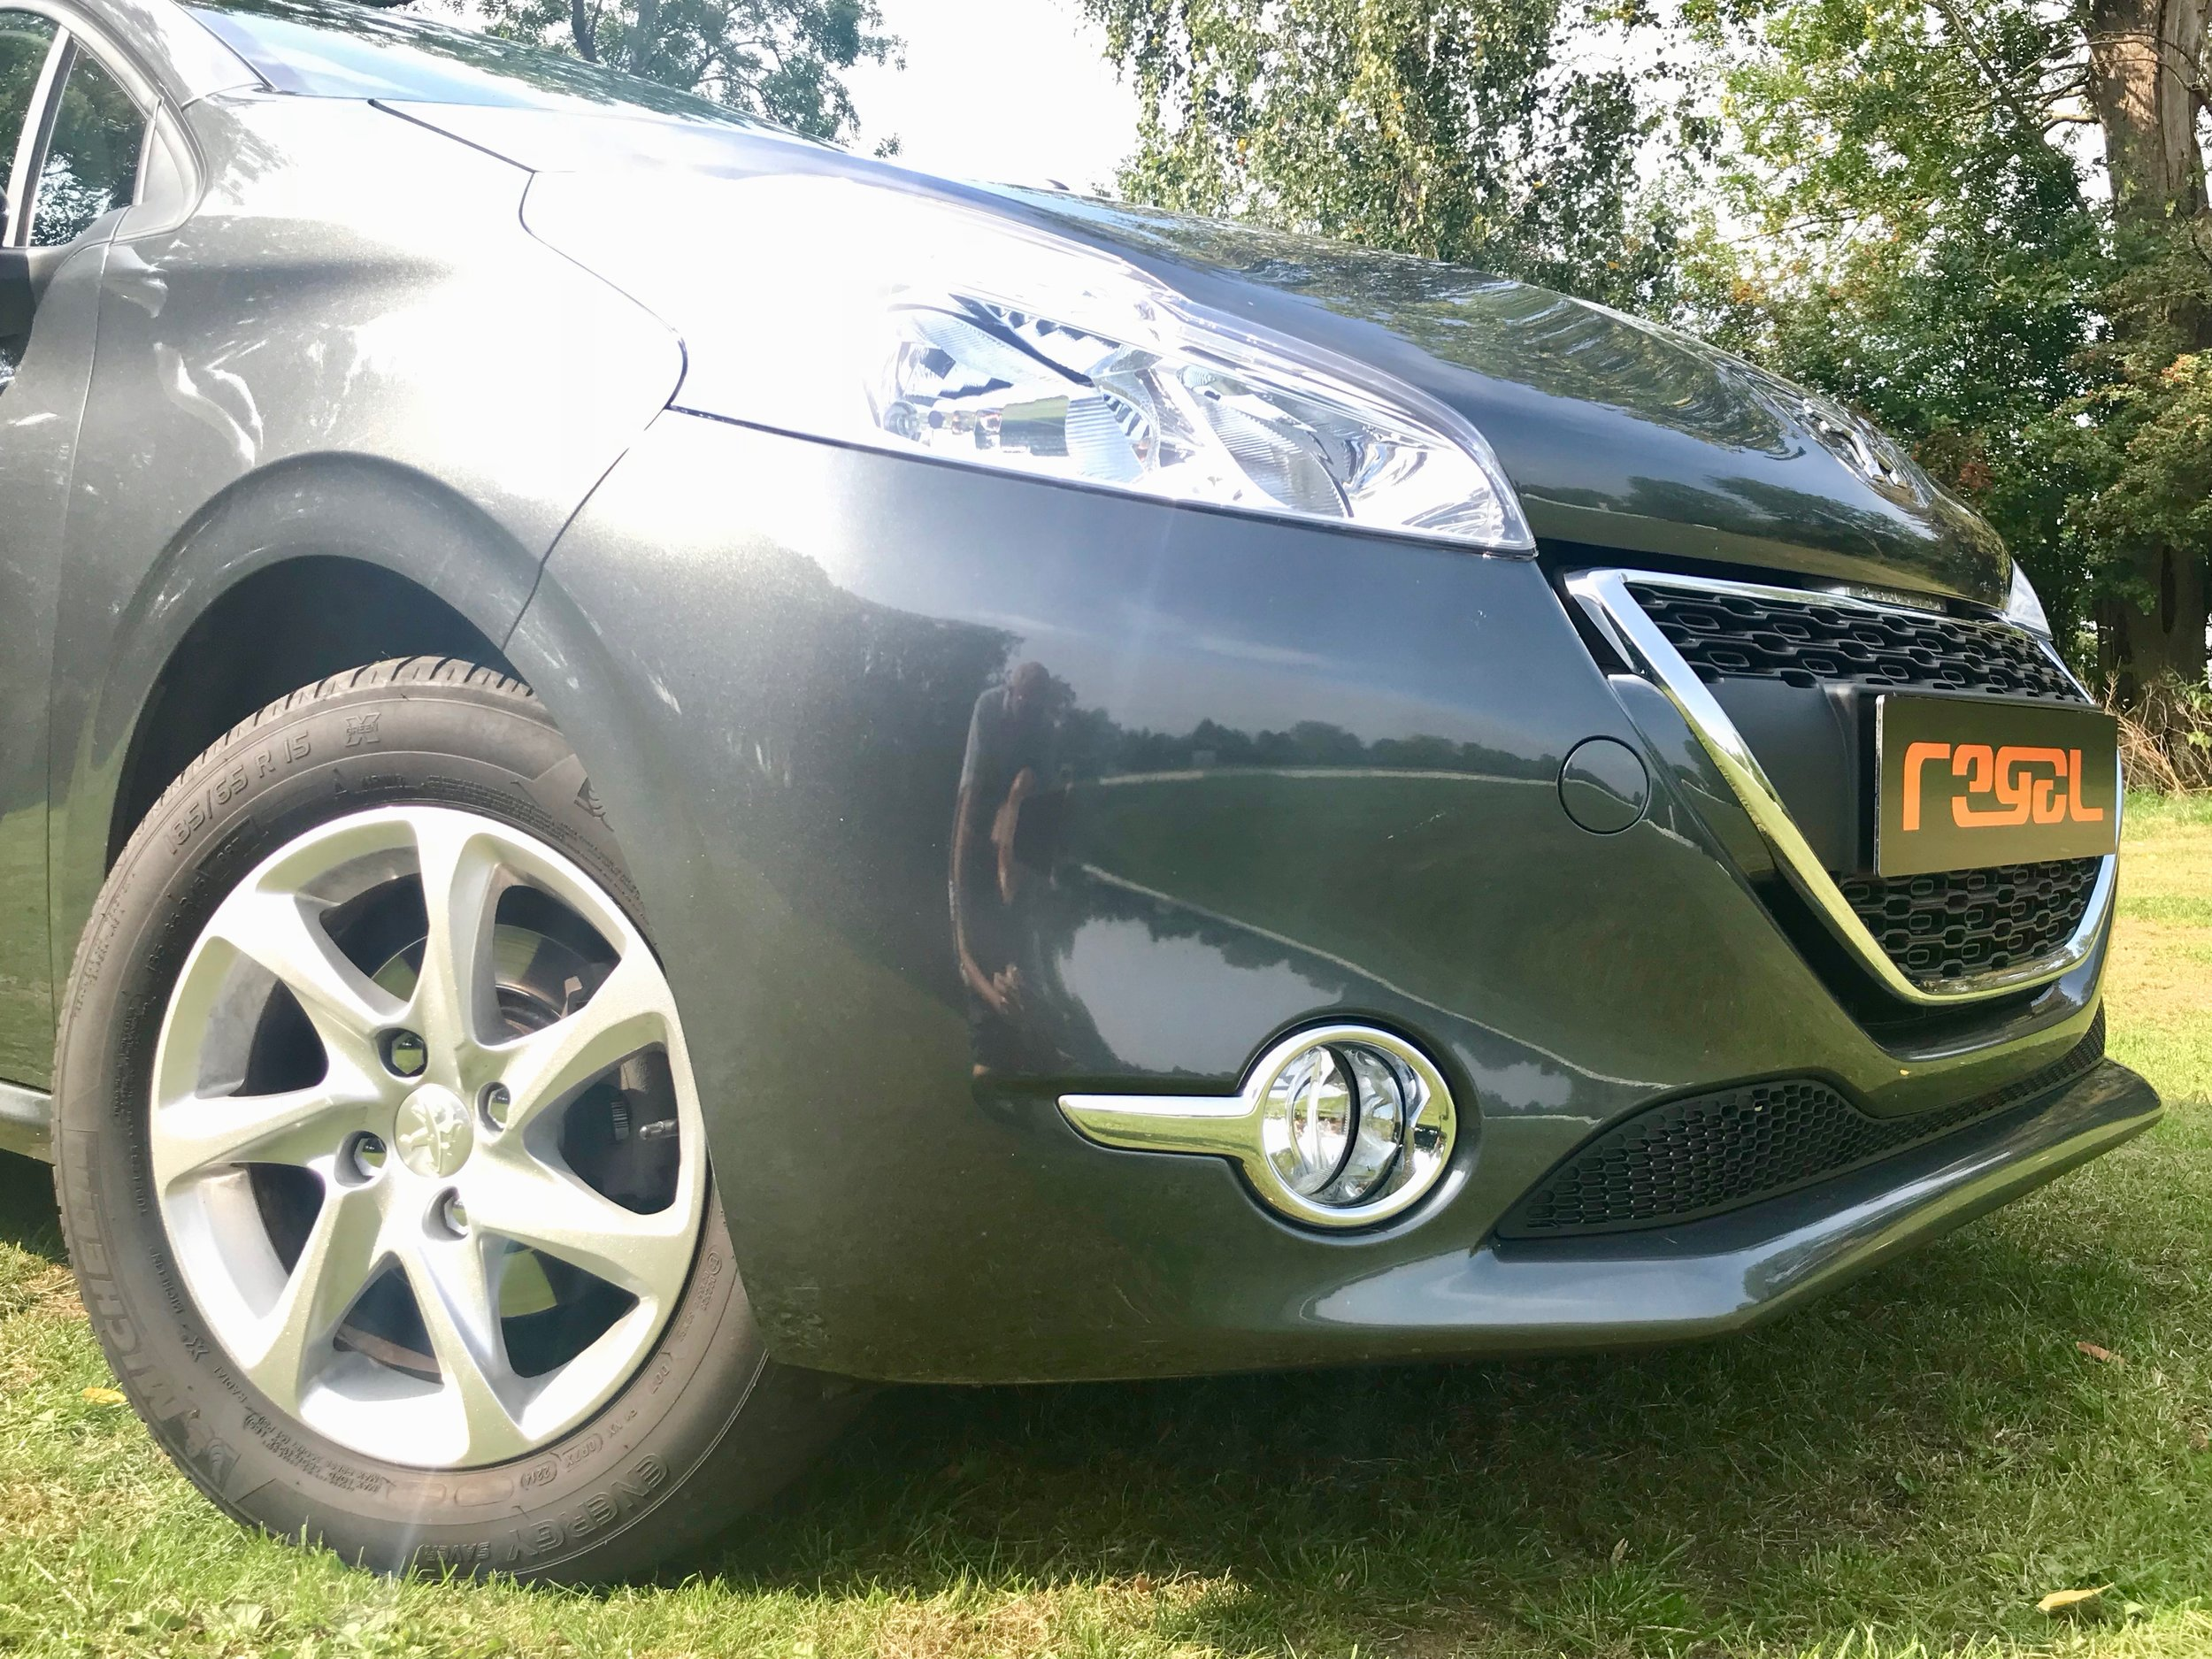 peugeot-208-vti-active-forsale-regalmotion-regalpreowned-usedcar-redditch-bromsgrove-worcestershire-6479-45.jpeg